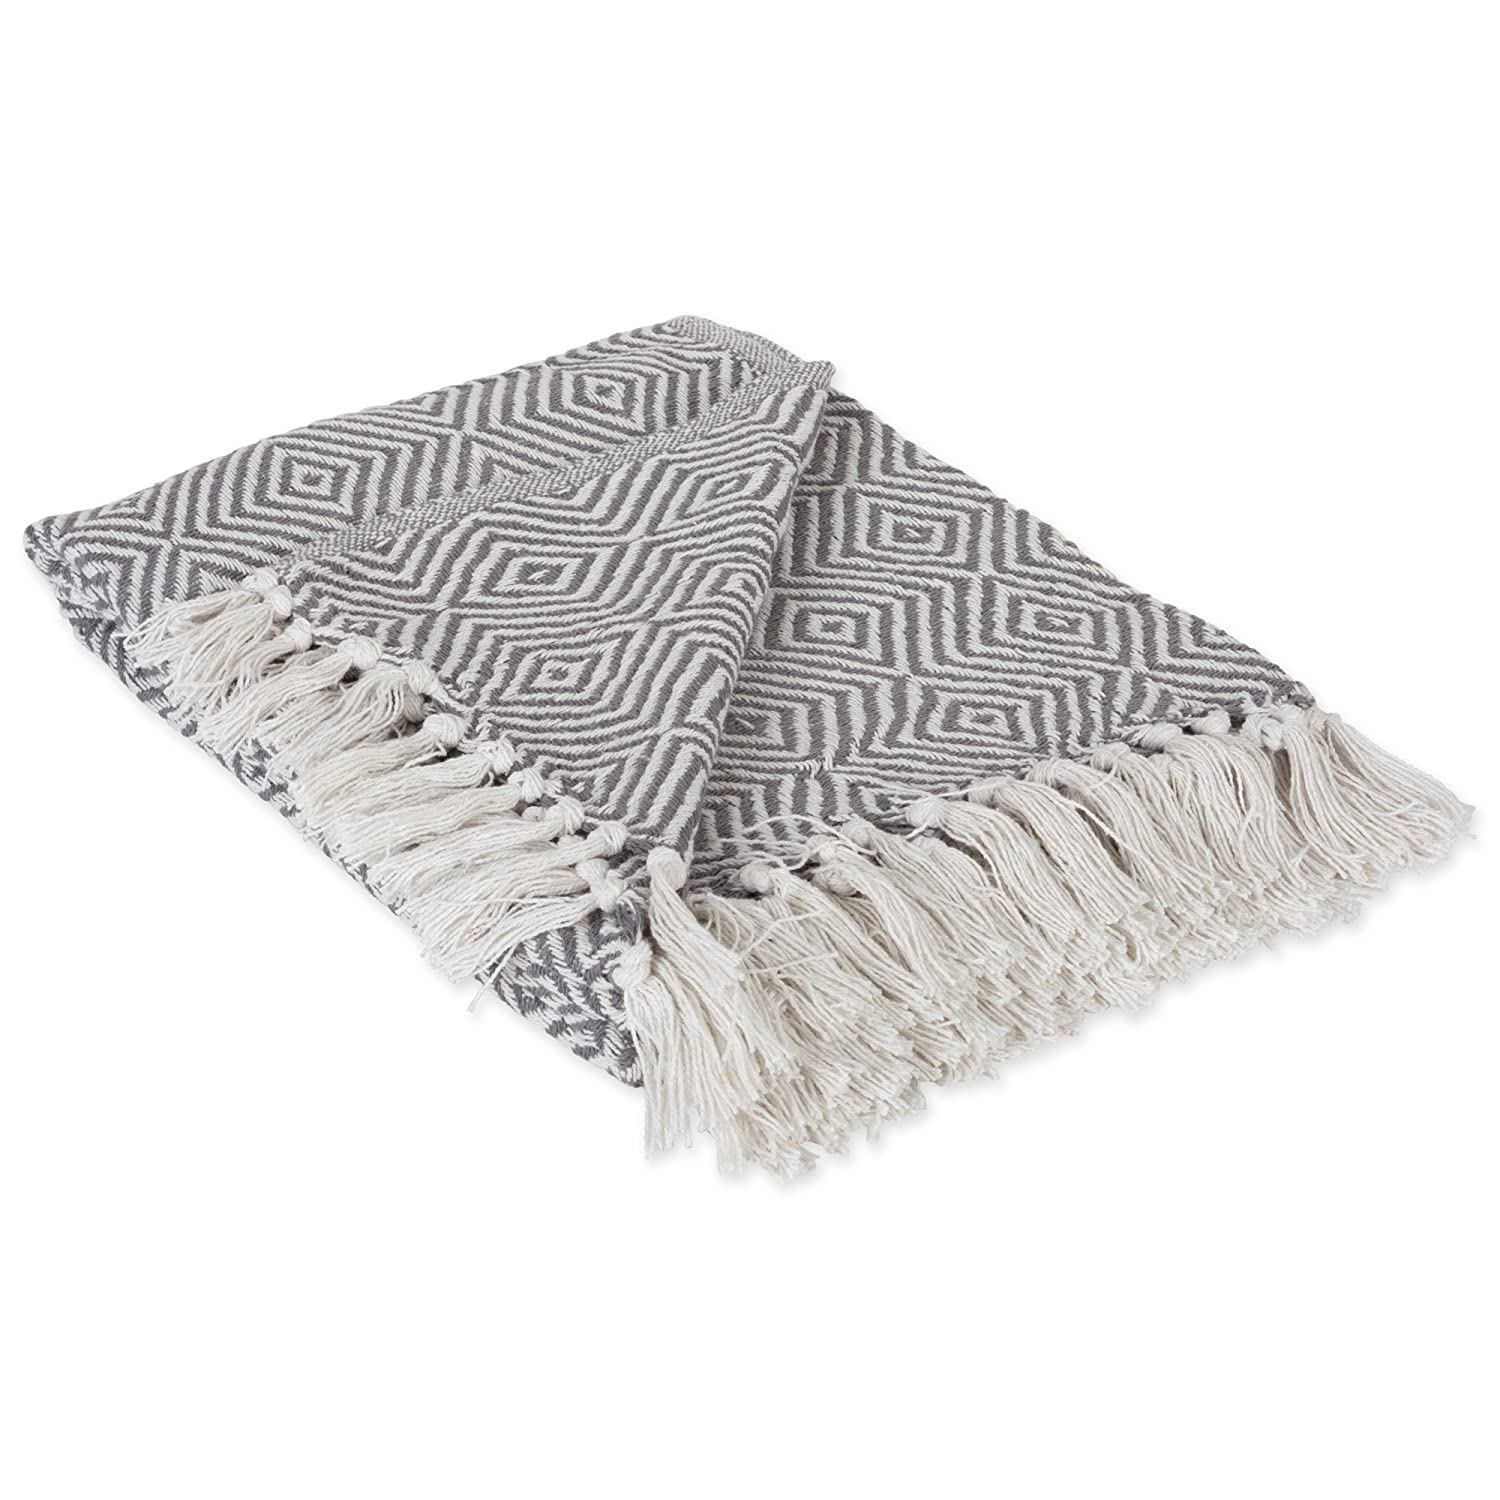 DII 100% Cotton Geometric Daimond Throw for Indoor/Outdoor Use Camping Bbq's Beaches Everyday Blanket, 50 x 60, Mineral Gray